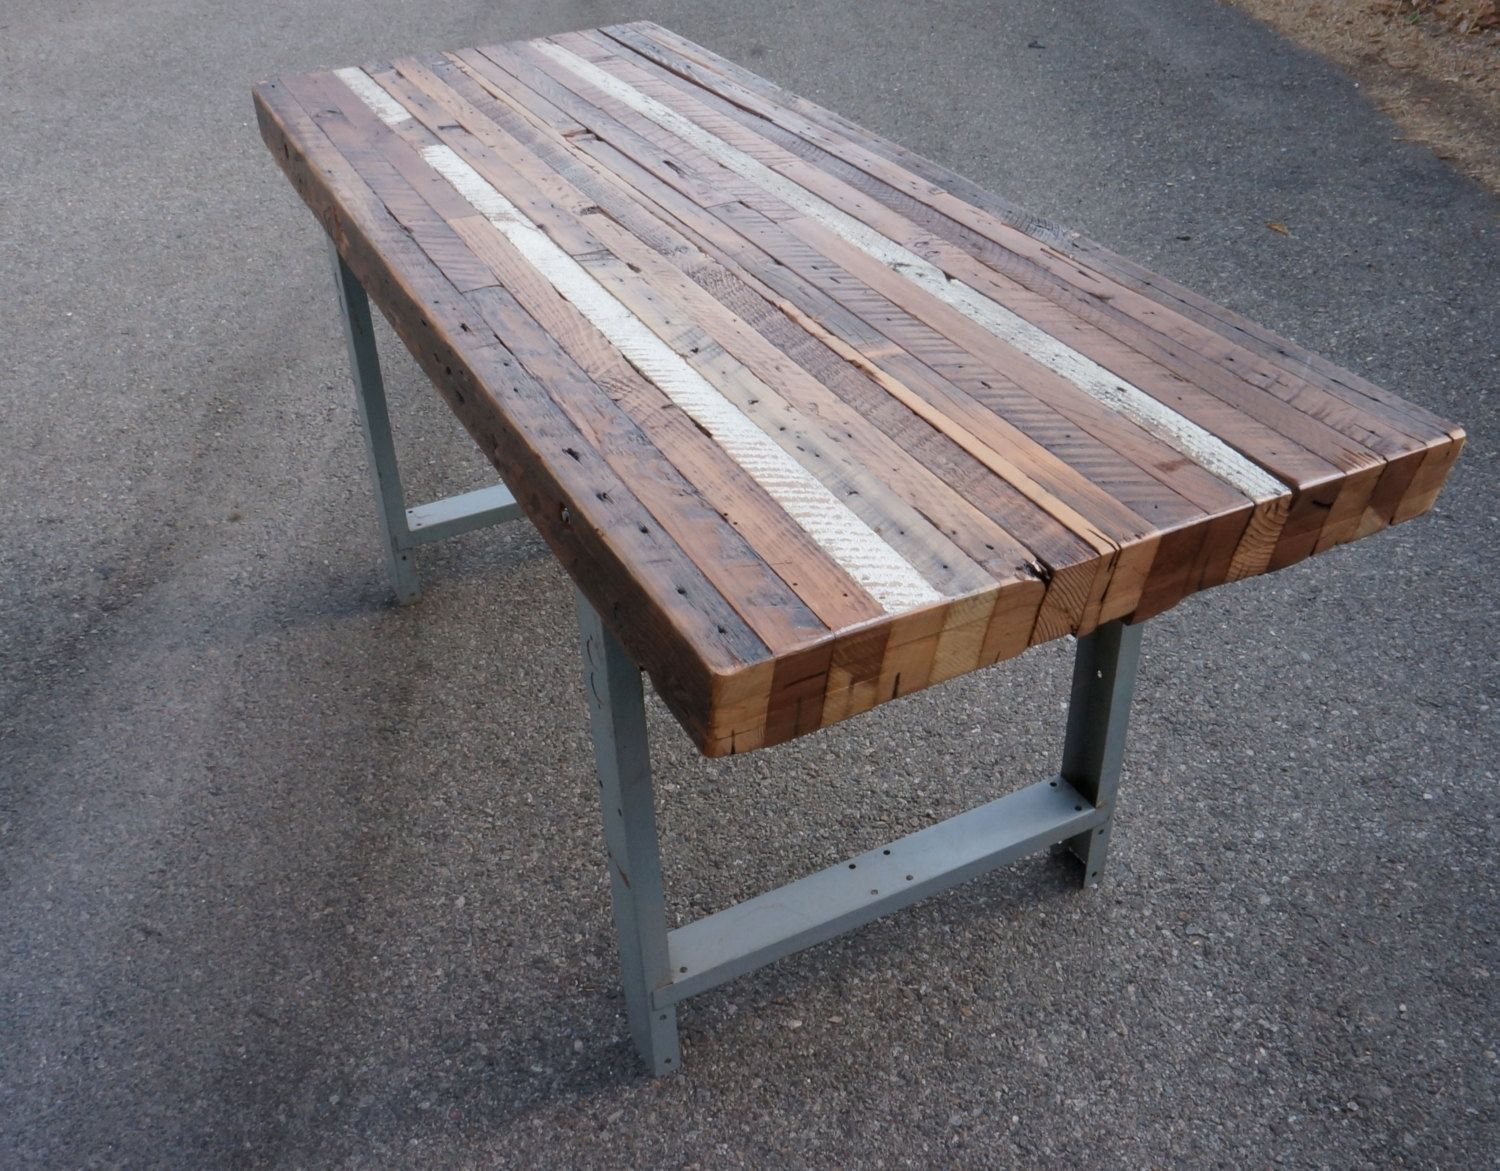 Handmade custom outdoor indoor rustic industrial reclaimed wood dining table coffee table by Recycled wood coffee table